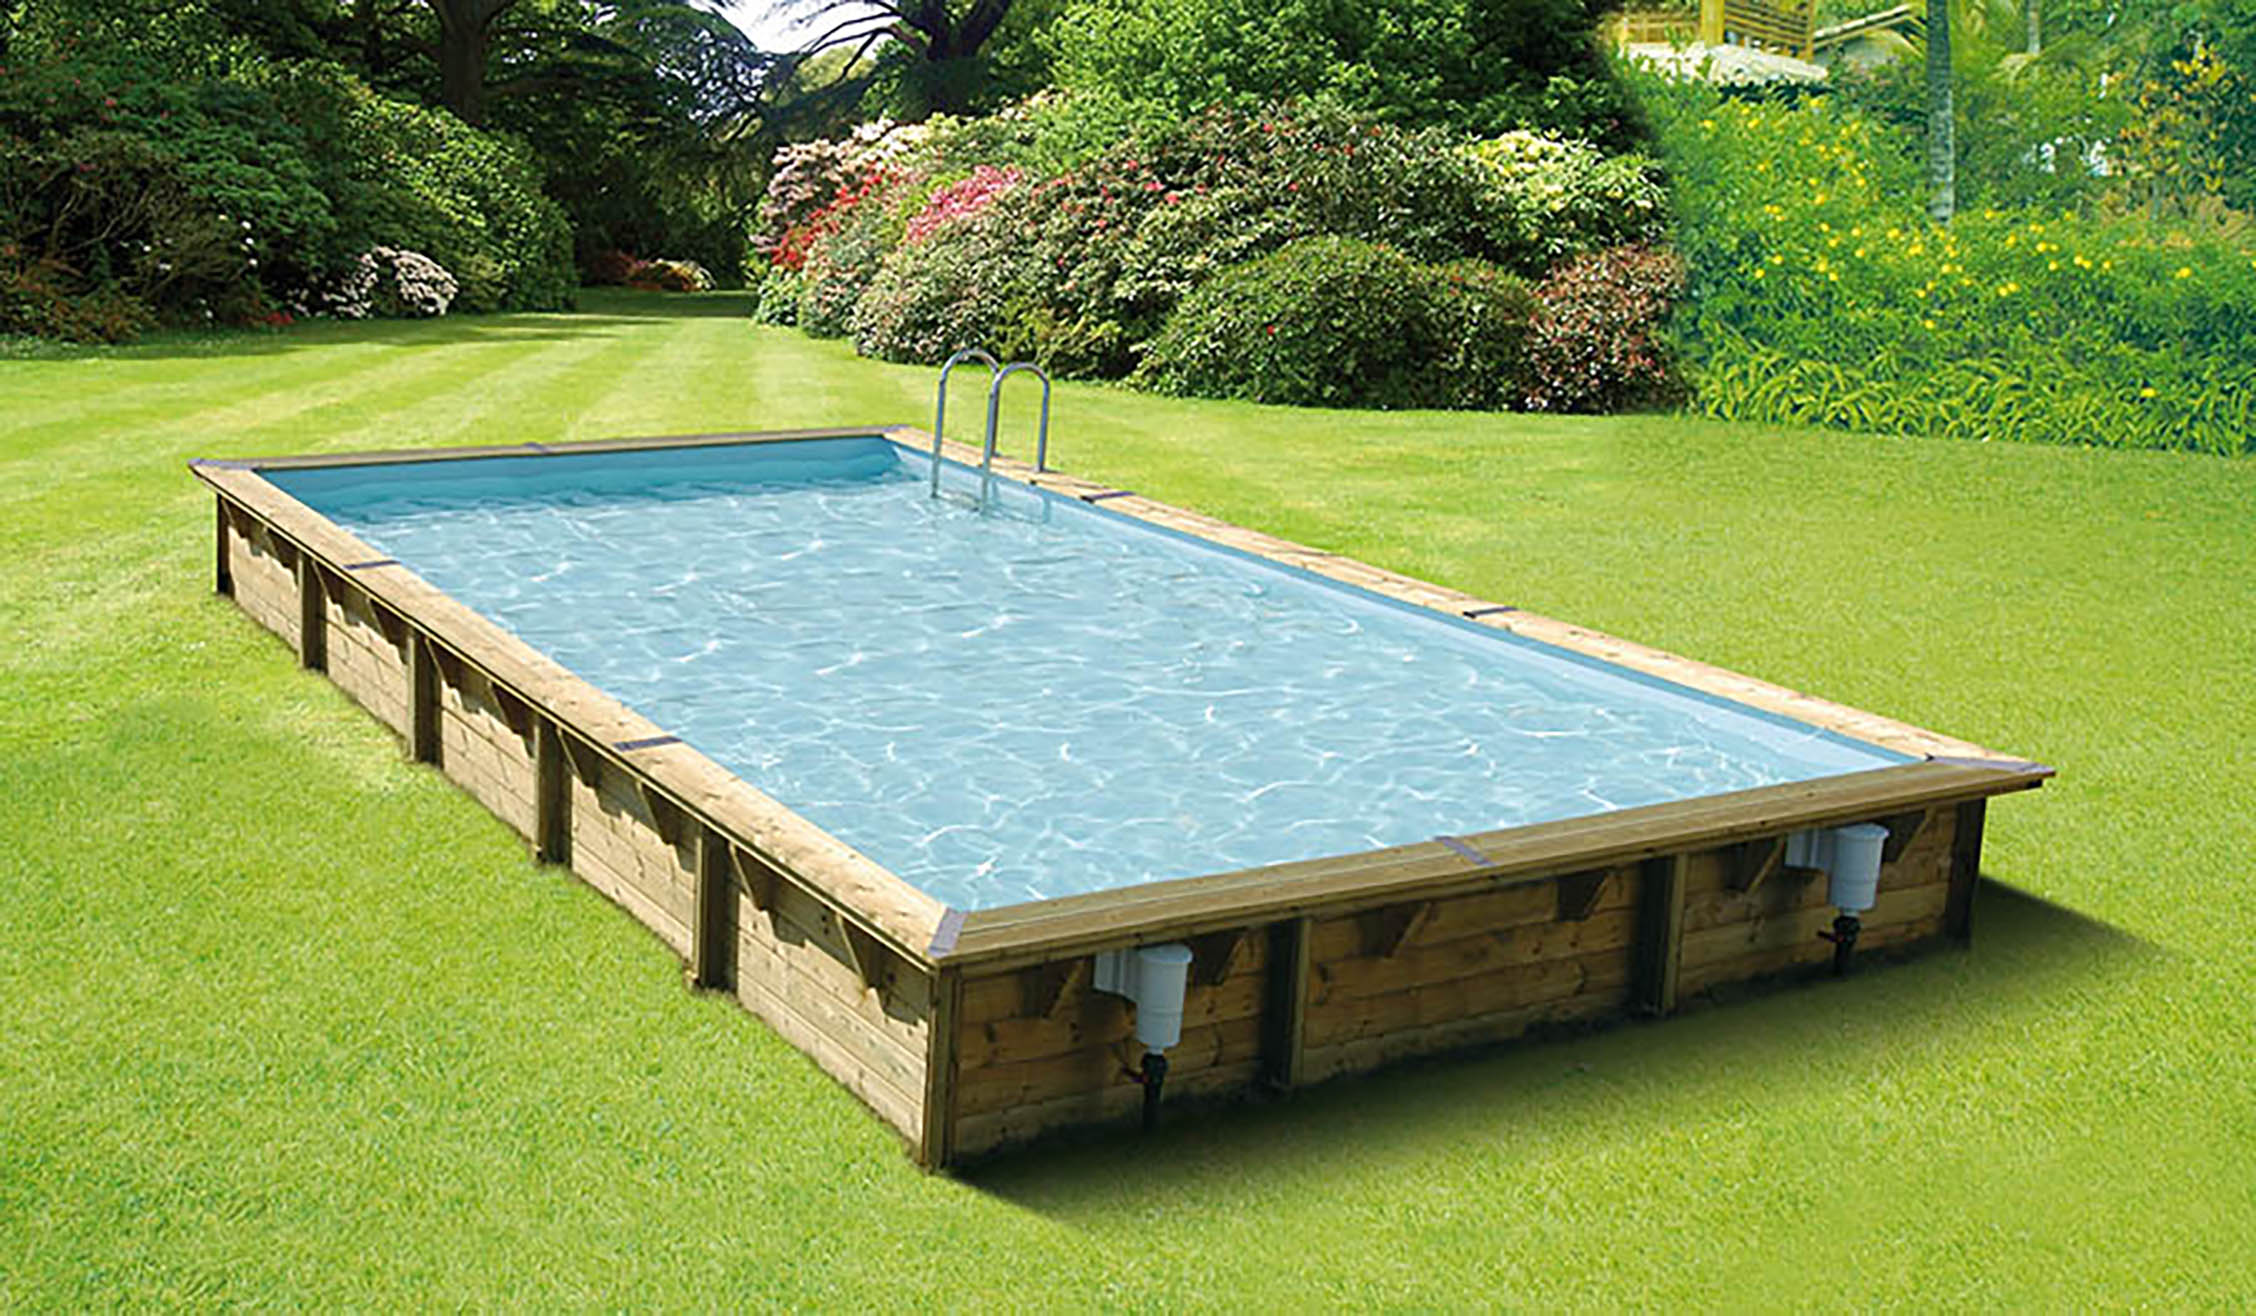 Amenagement piscine bois hors sol id es for Piscine bois